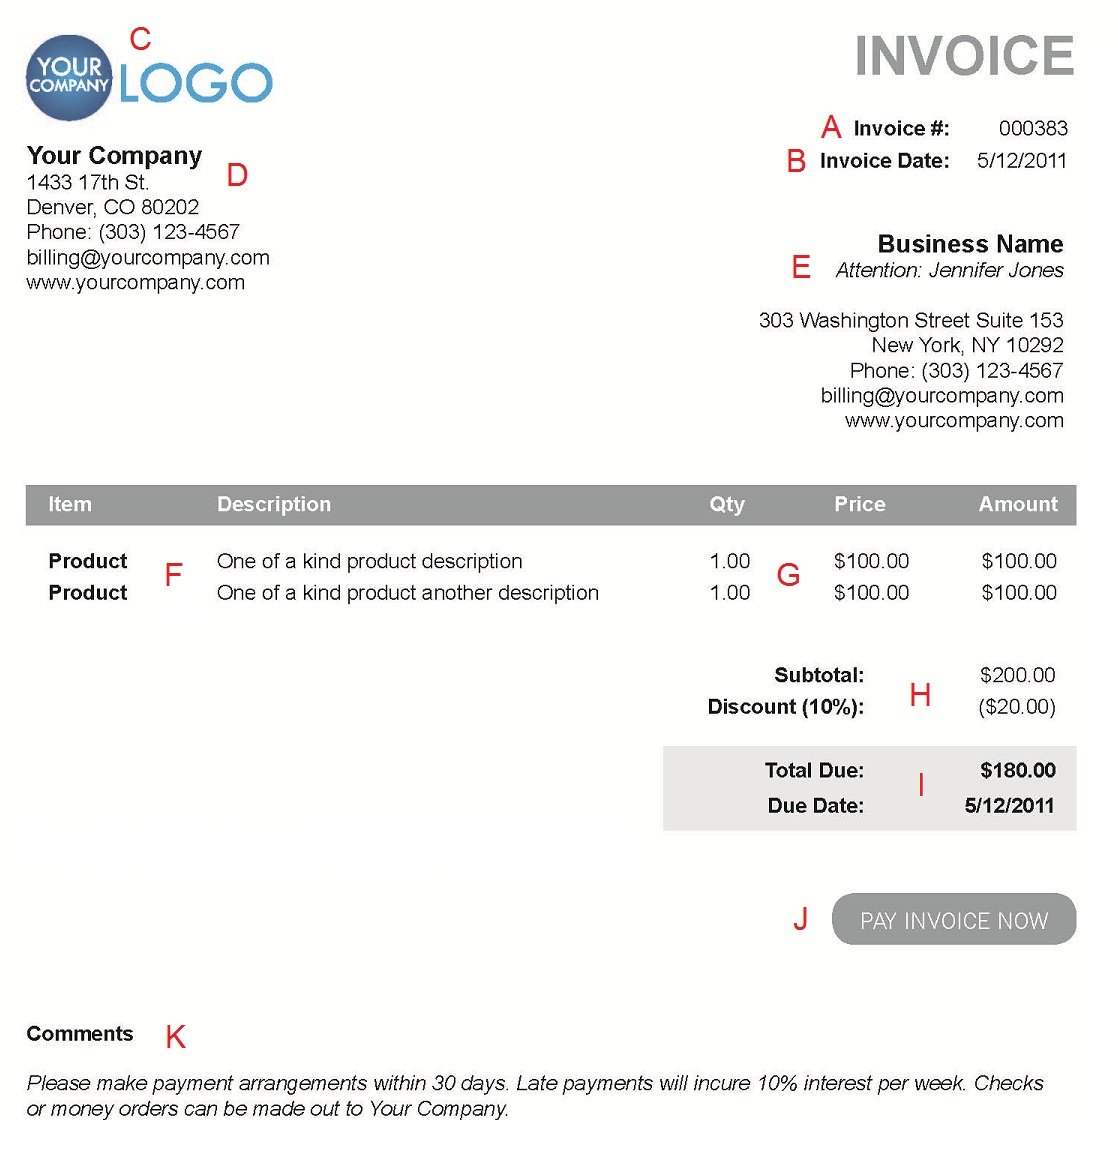 Shopdesignsus  Surprising The  Different Sections Of An Electronic Payment Invoice With Great A  With Amusing Ups Paperless Invoice Also Invoice Cover Letter In Addition How To Write Up An Invoice And Custom Invoice Printing As Well As How Do You Send An Invoice On Paypal Additionally Edmunds Invoice Price New Car From Paysimplecom With Shopdesignsus  Great The  Different Sections Of An Electronic Payment Invoice With Amusing A  And Surprising Ups Paperless Invoice Also Invoice Cover Letter In Addition How To Write Up An Invoice From Paysimplecom